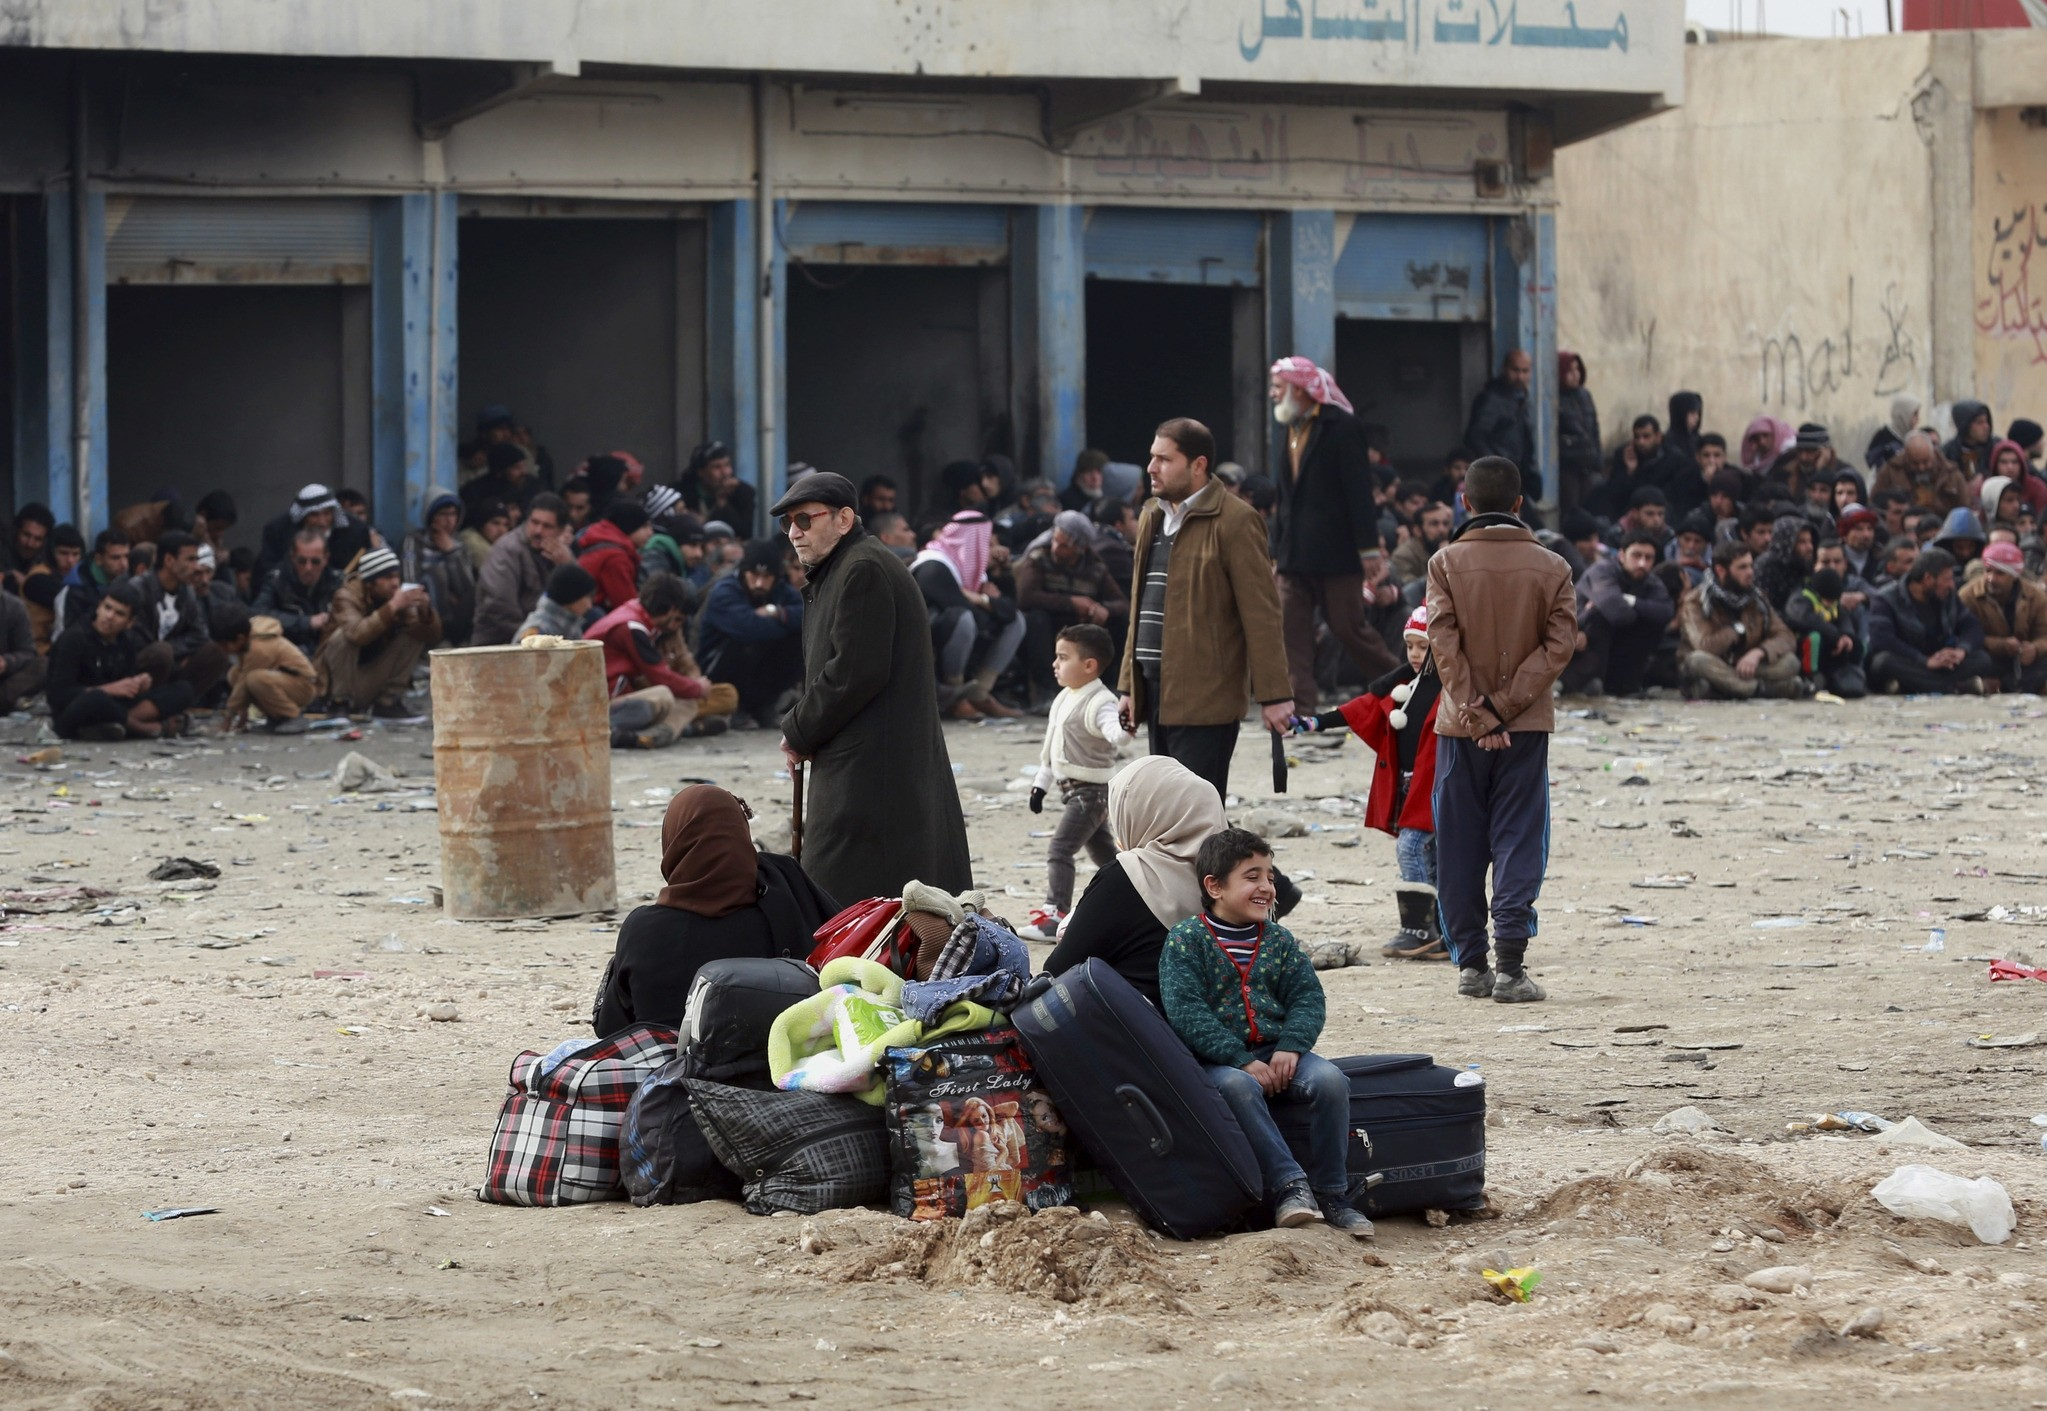 Iraqis waiting at the gathering point to be taken for a camp for internally displaced people, in Bartella, Dec 31, 2016. (AP Photo)